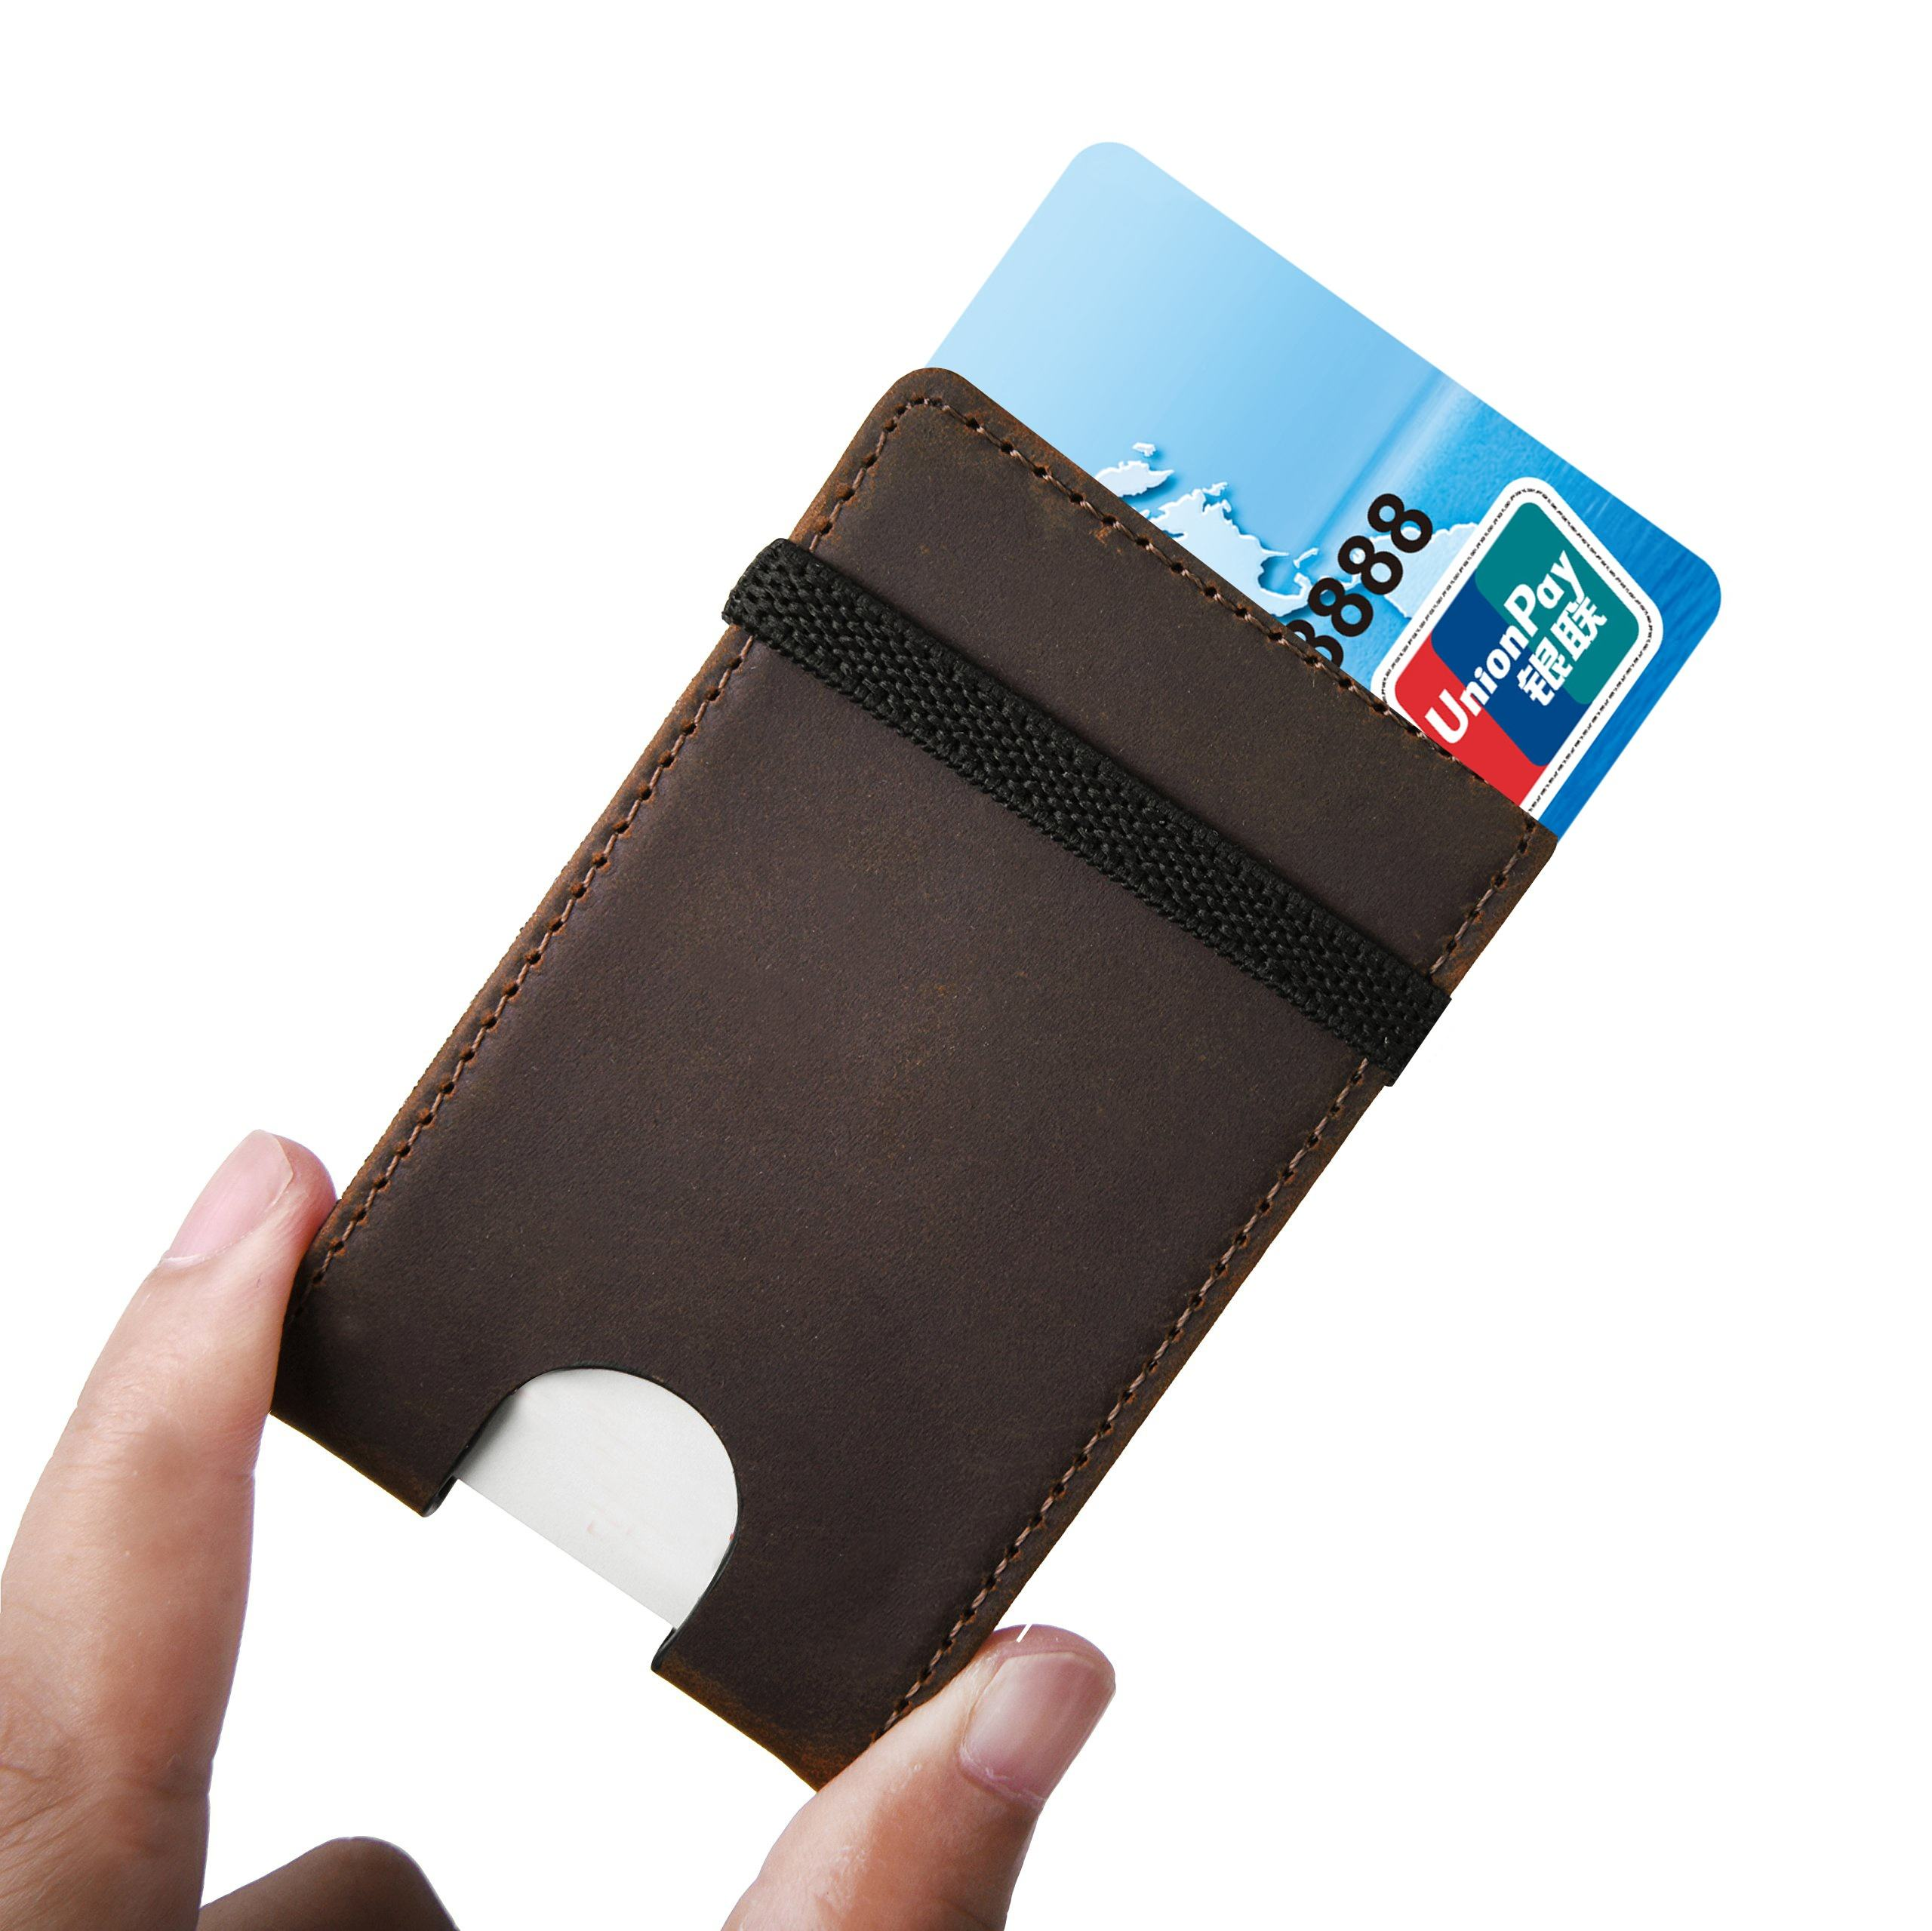 DAX Multifunction Pull Out Card Holder Stack Up Ultra Slim Wallet Case Purse